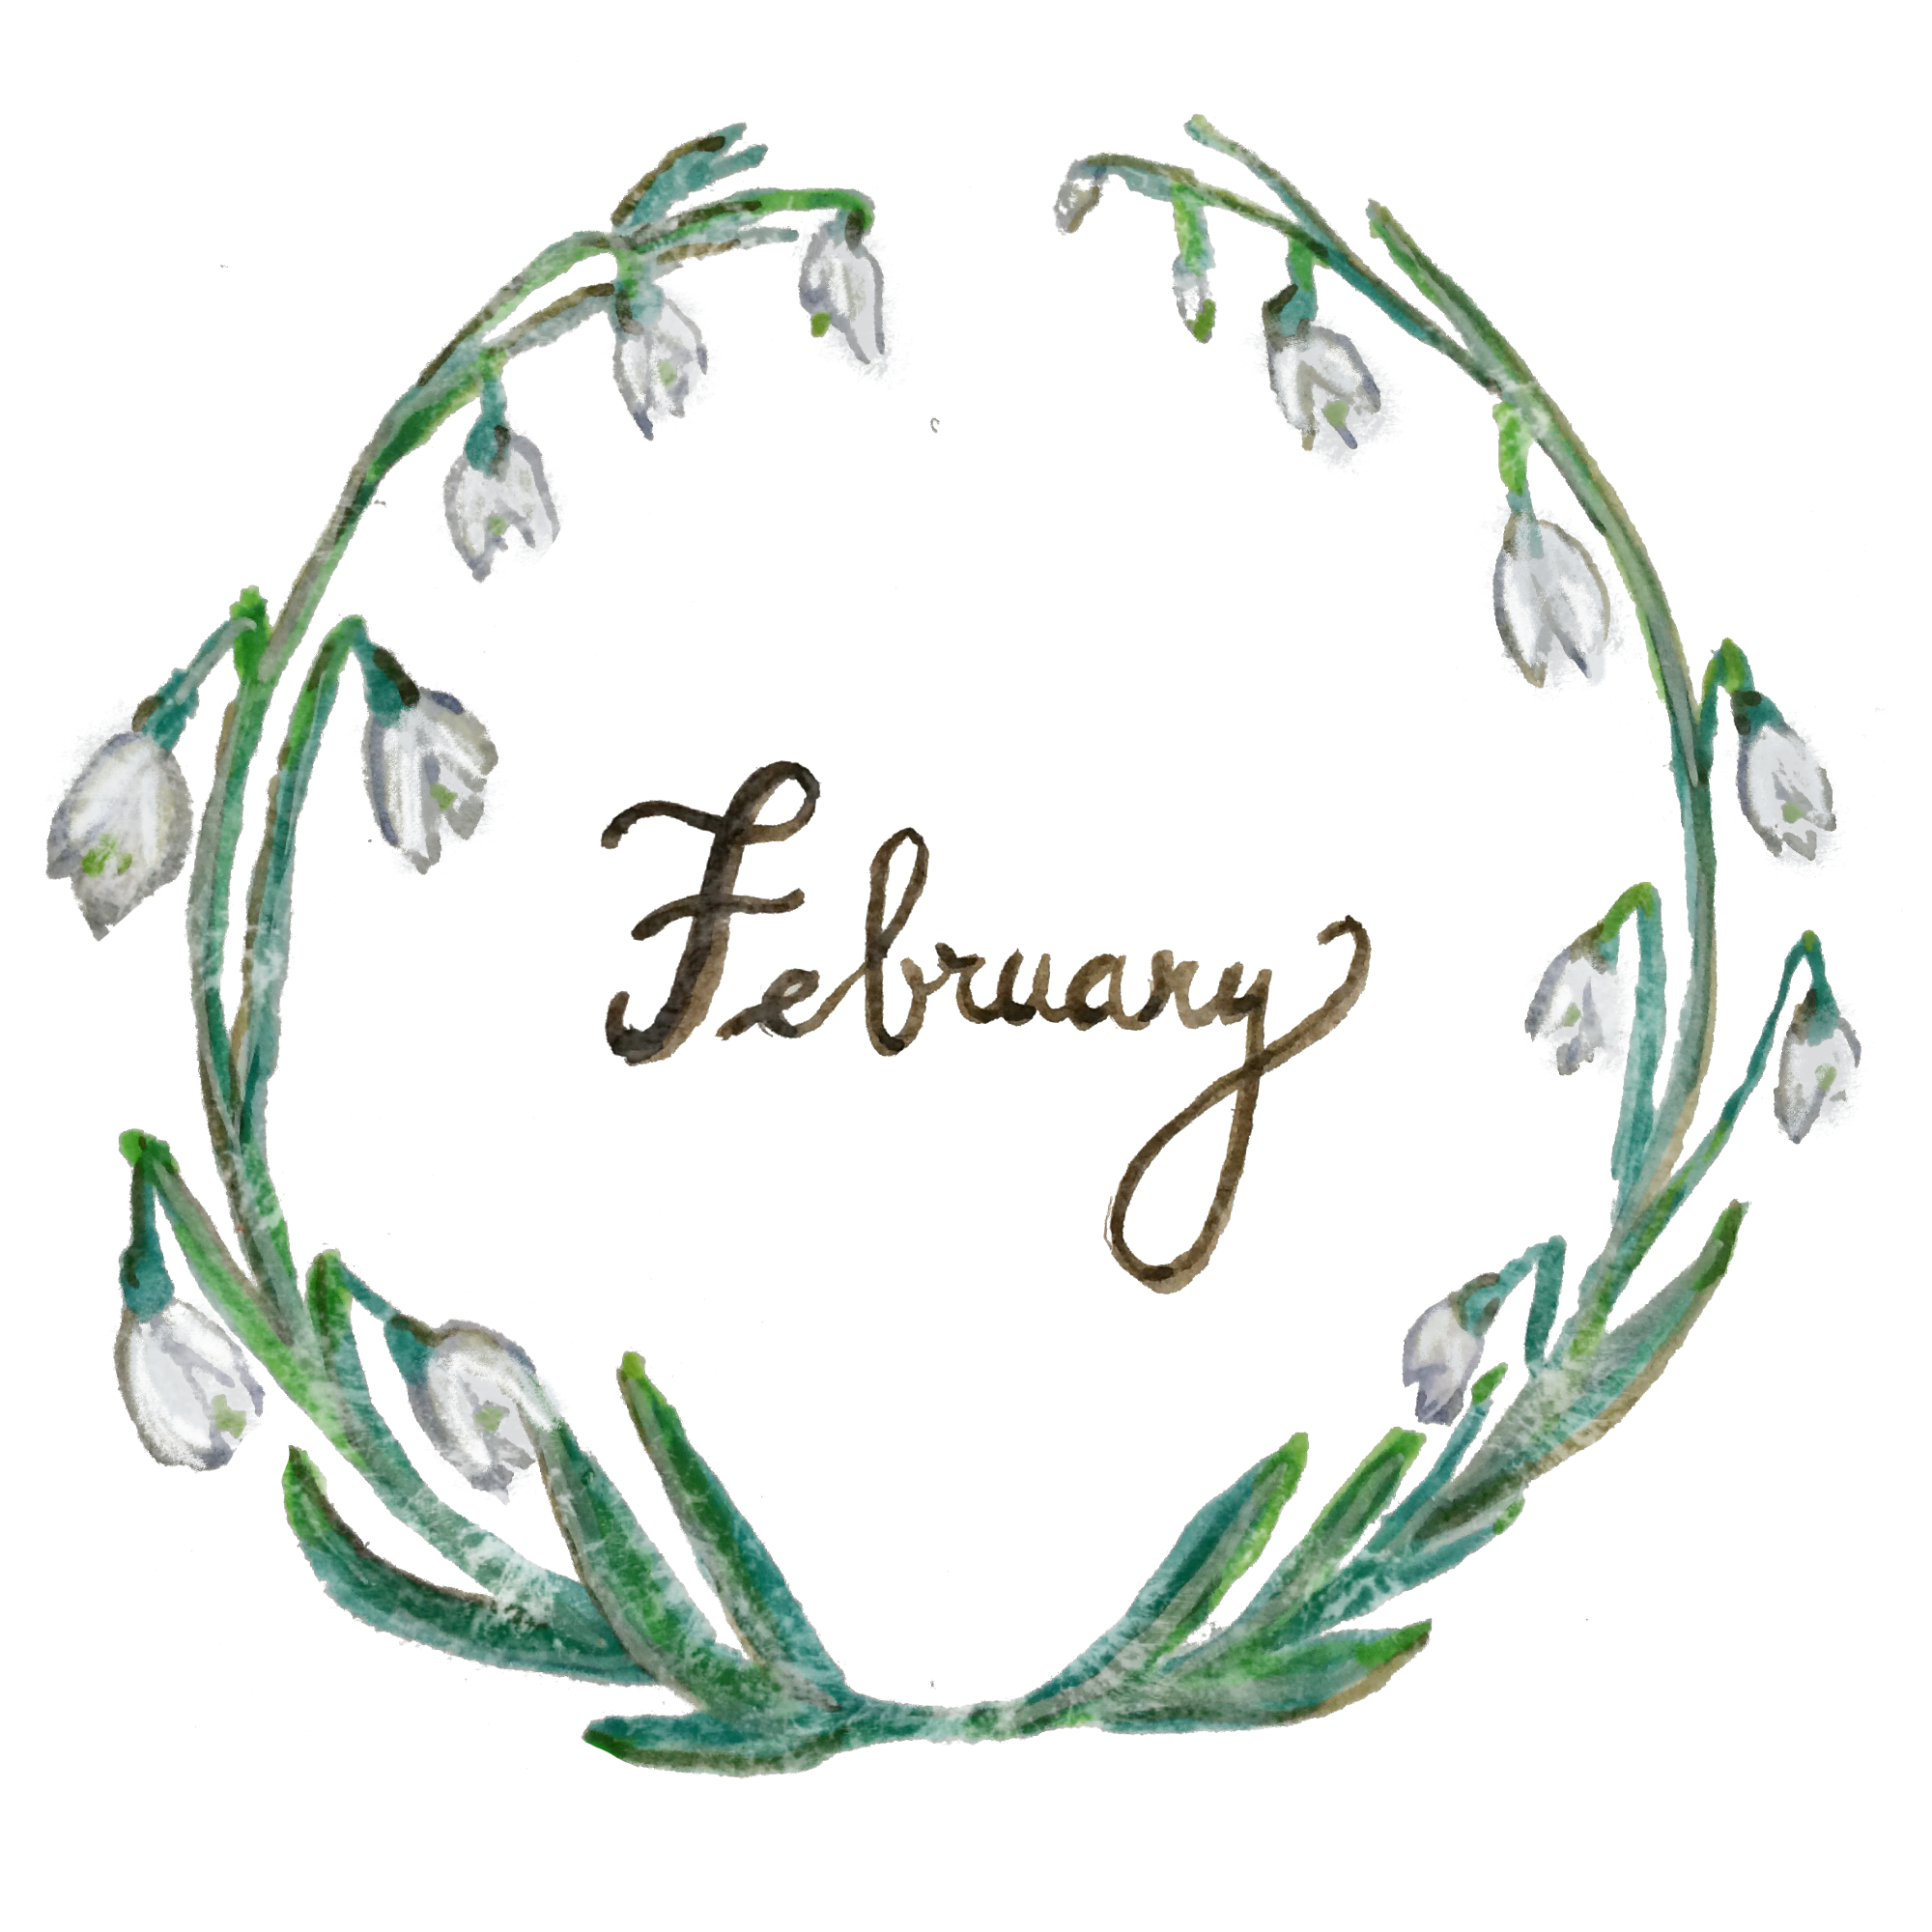 February by Emilie Maguin for Hannah Bullivant.